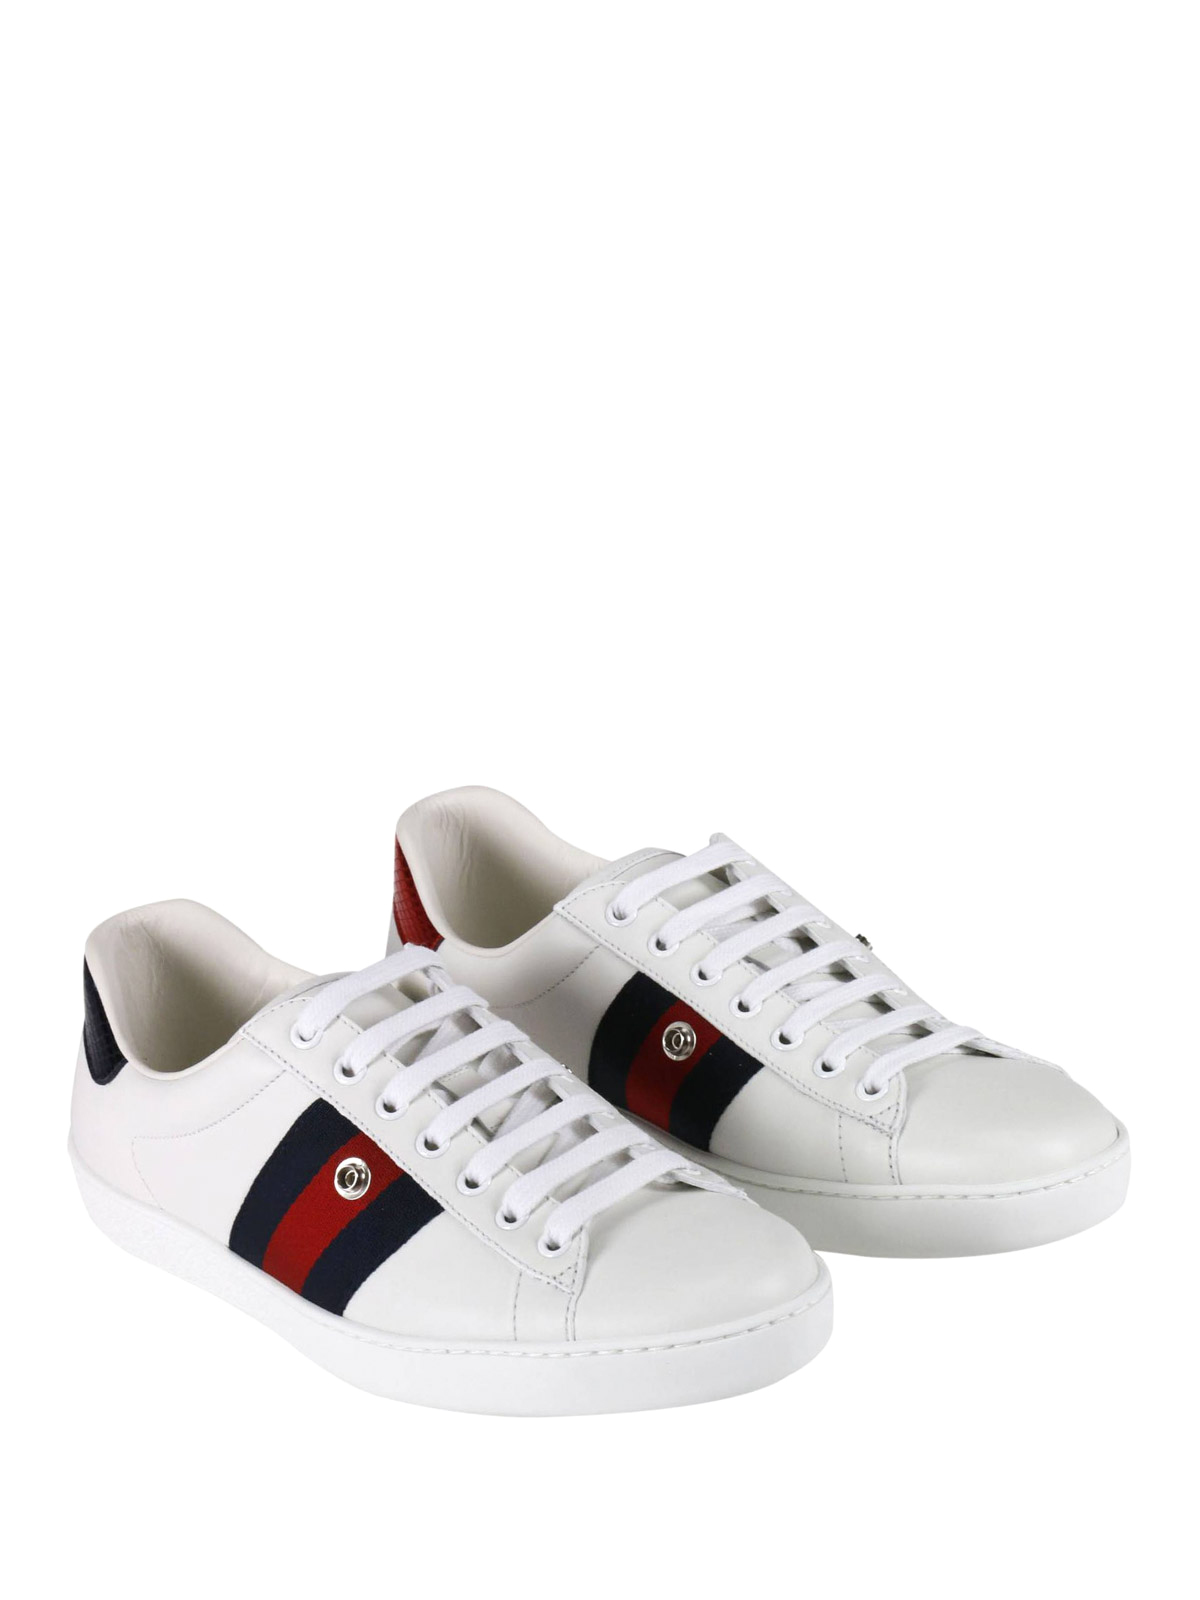 Gucci - Ace removable patch sneakers